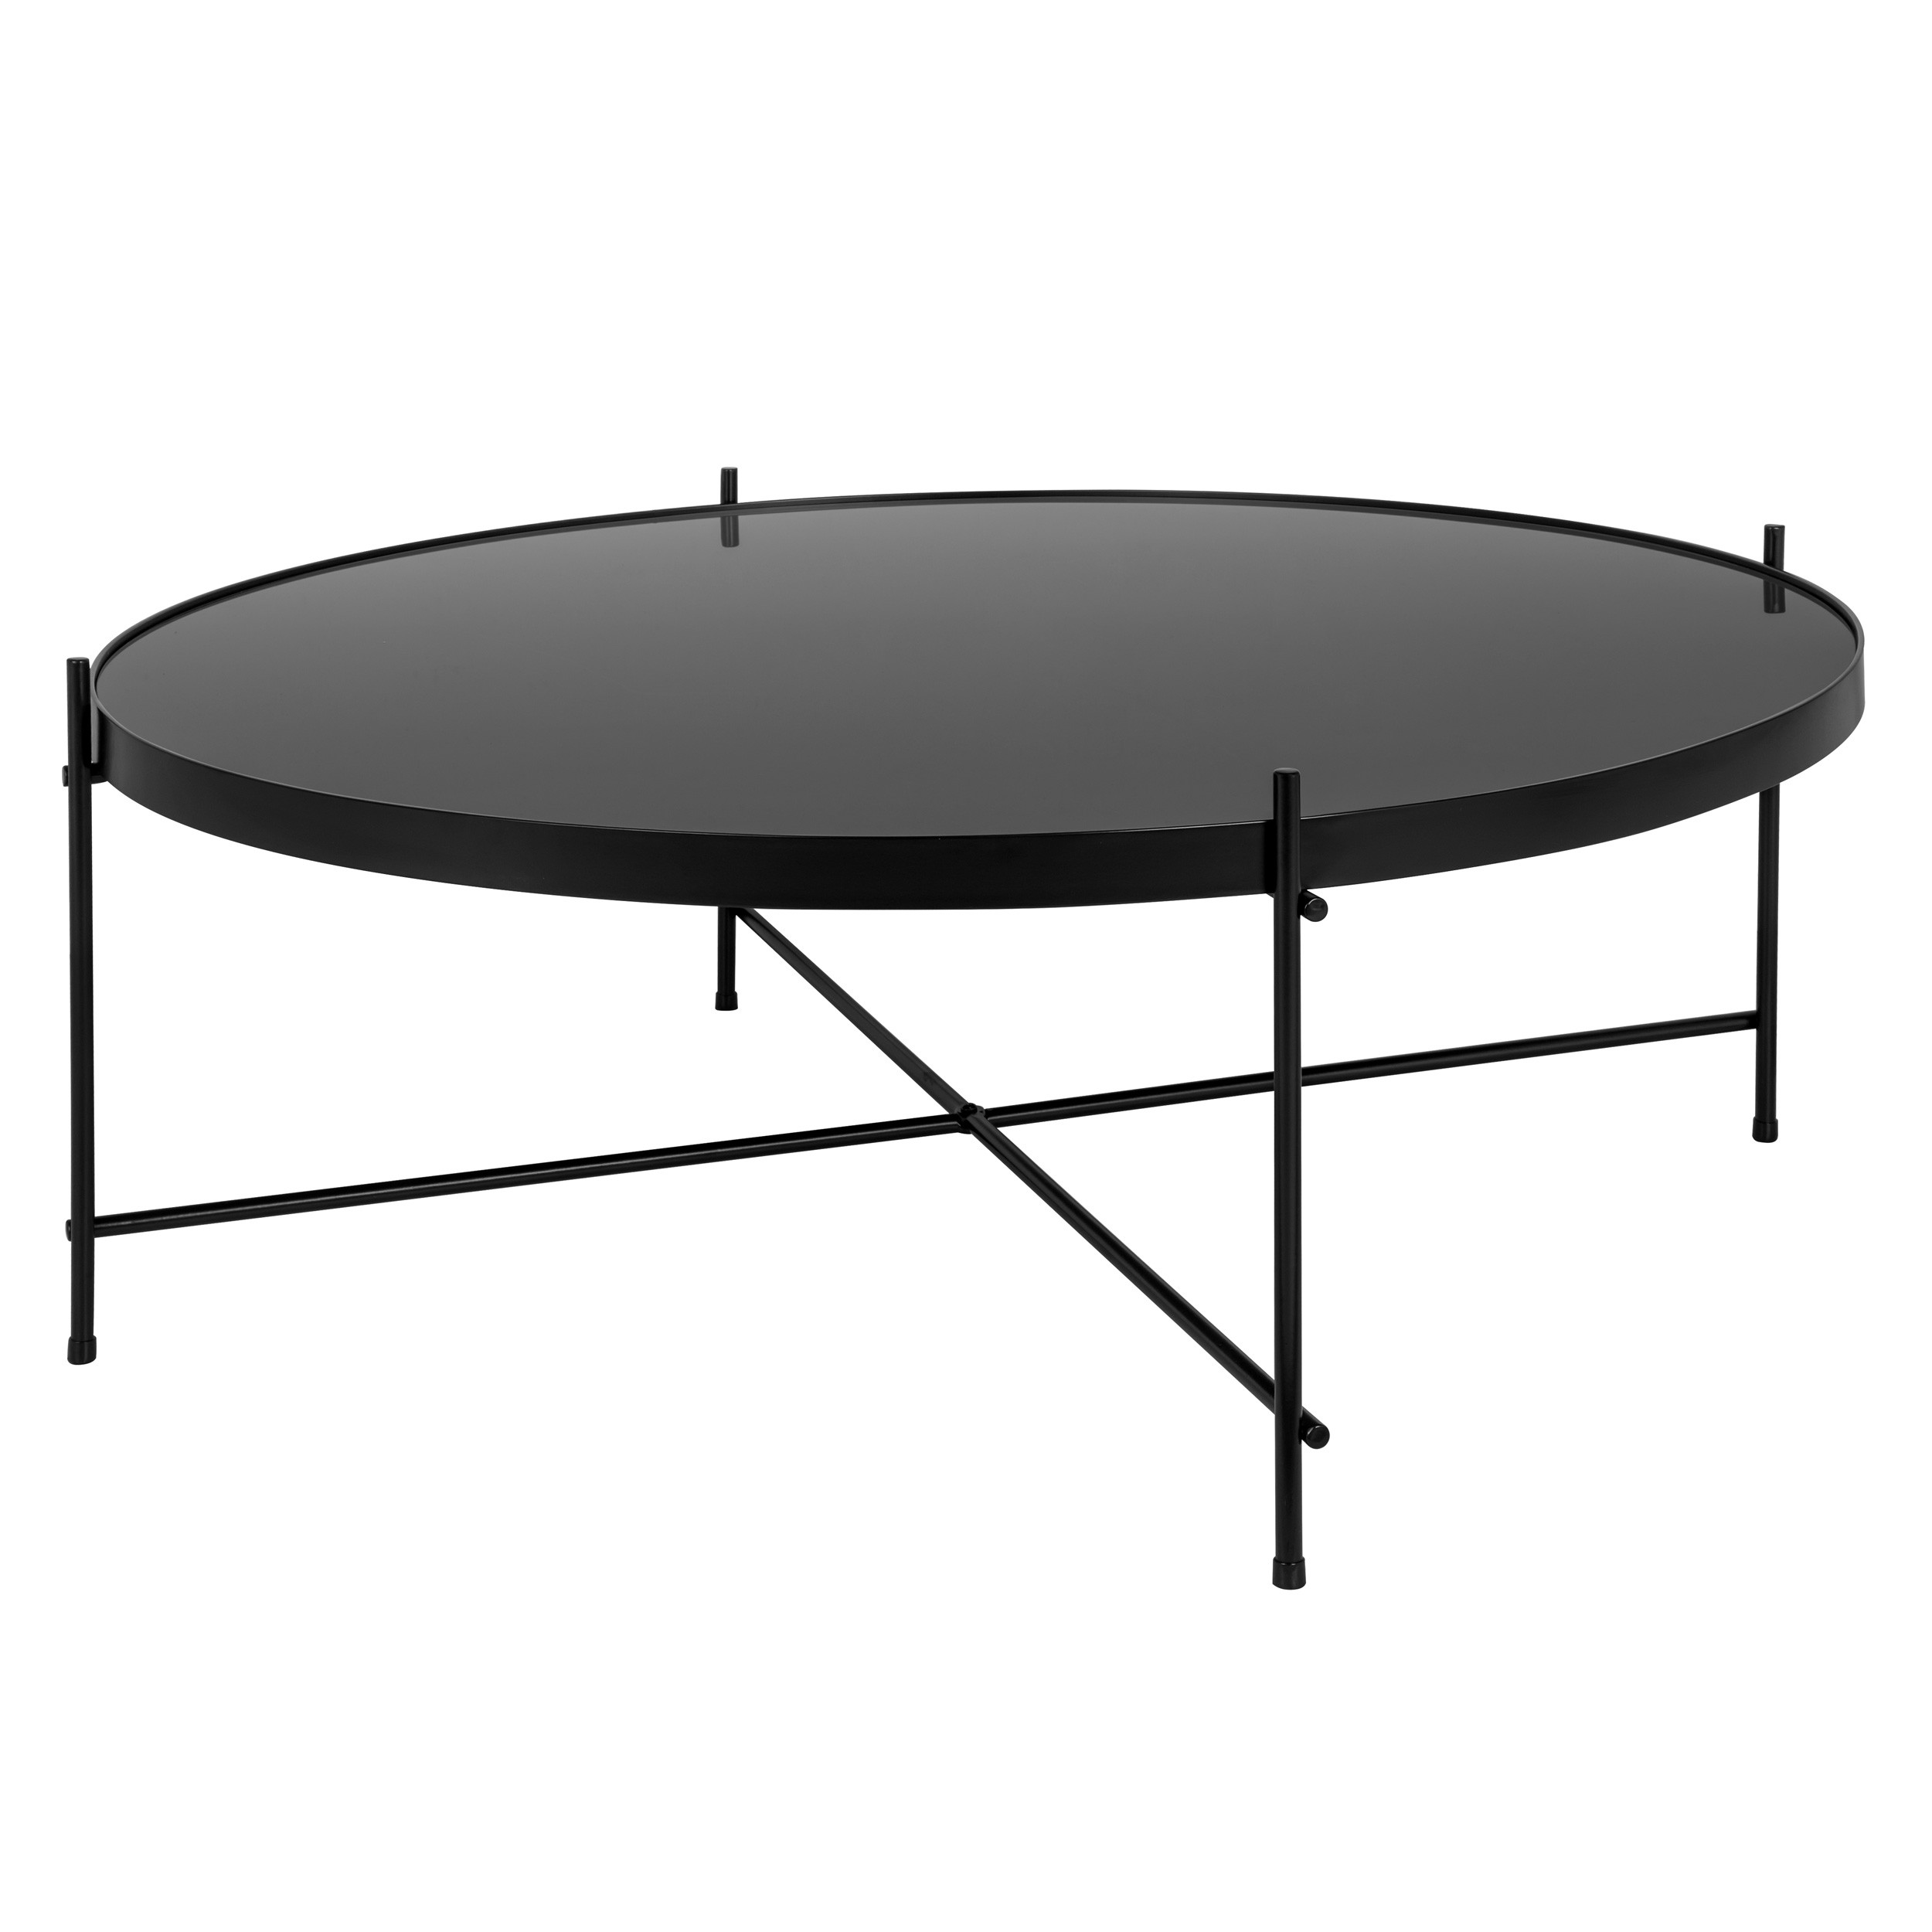 table basse ronde valdo noire l choisissez nos tables basses ronde valdo noires l rdv d co. Black Bedroom Furniture Sets. Home Design Ideas